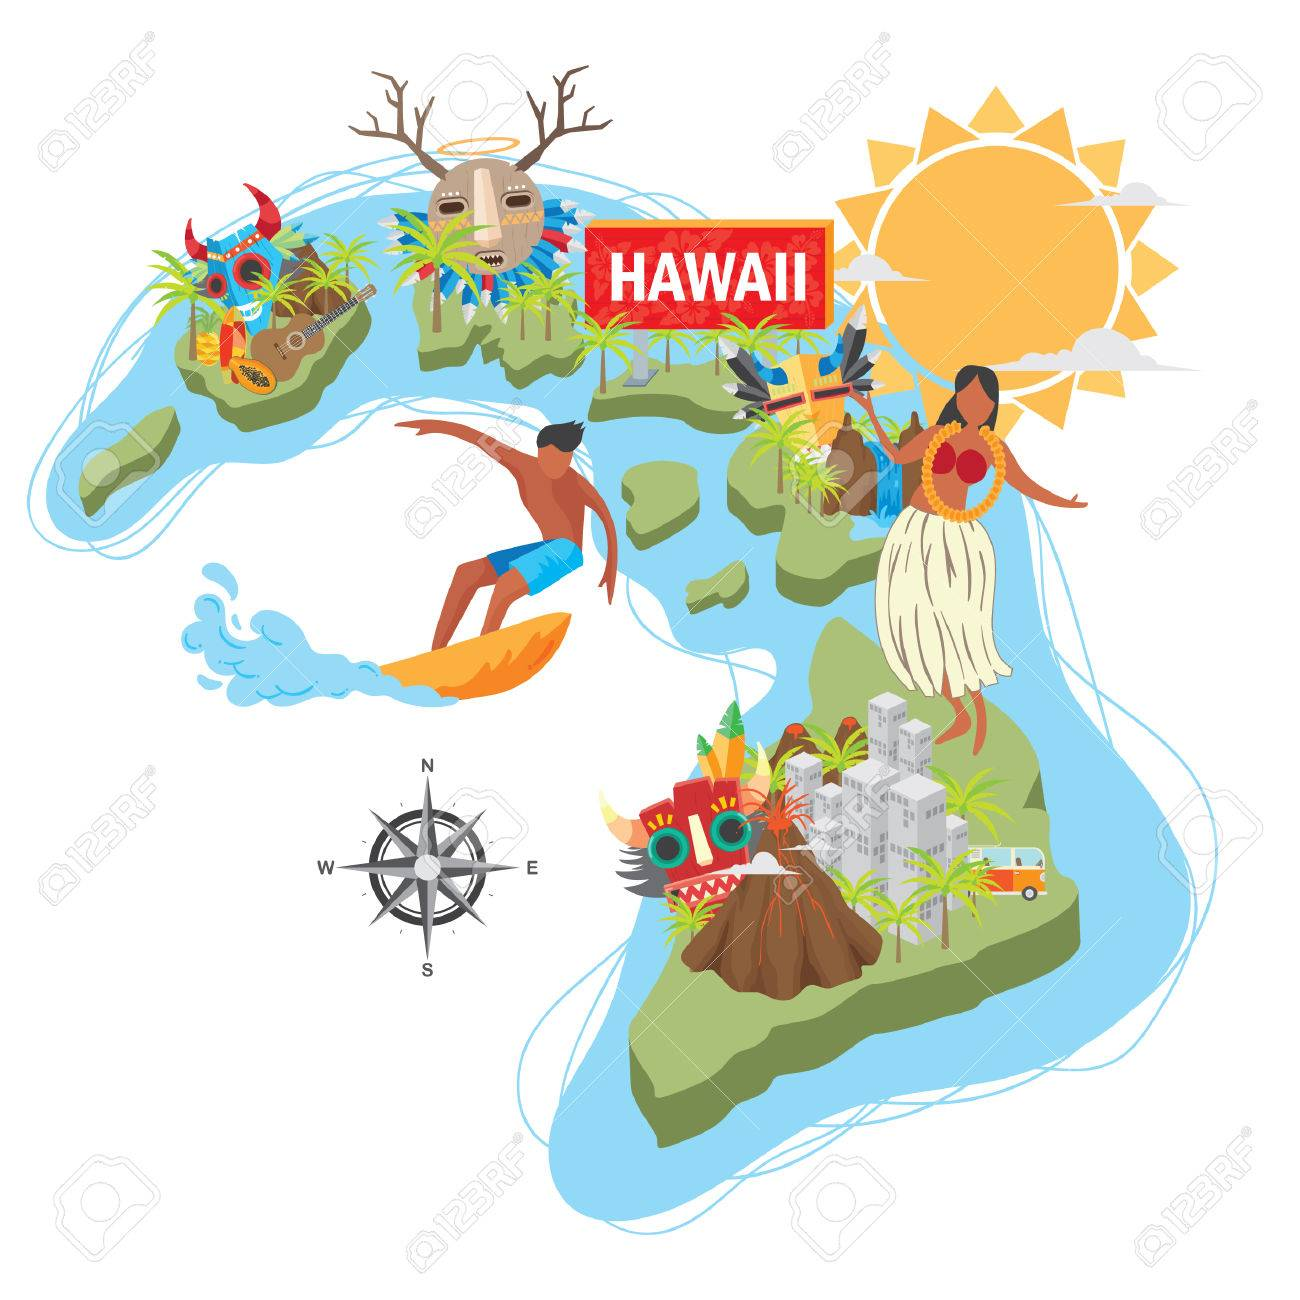 [Image: 51369680-hawaii-carte-d-%C3%A9tat.jpg]